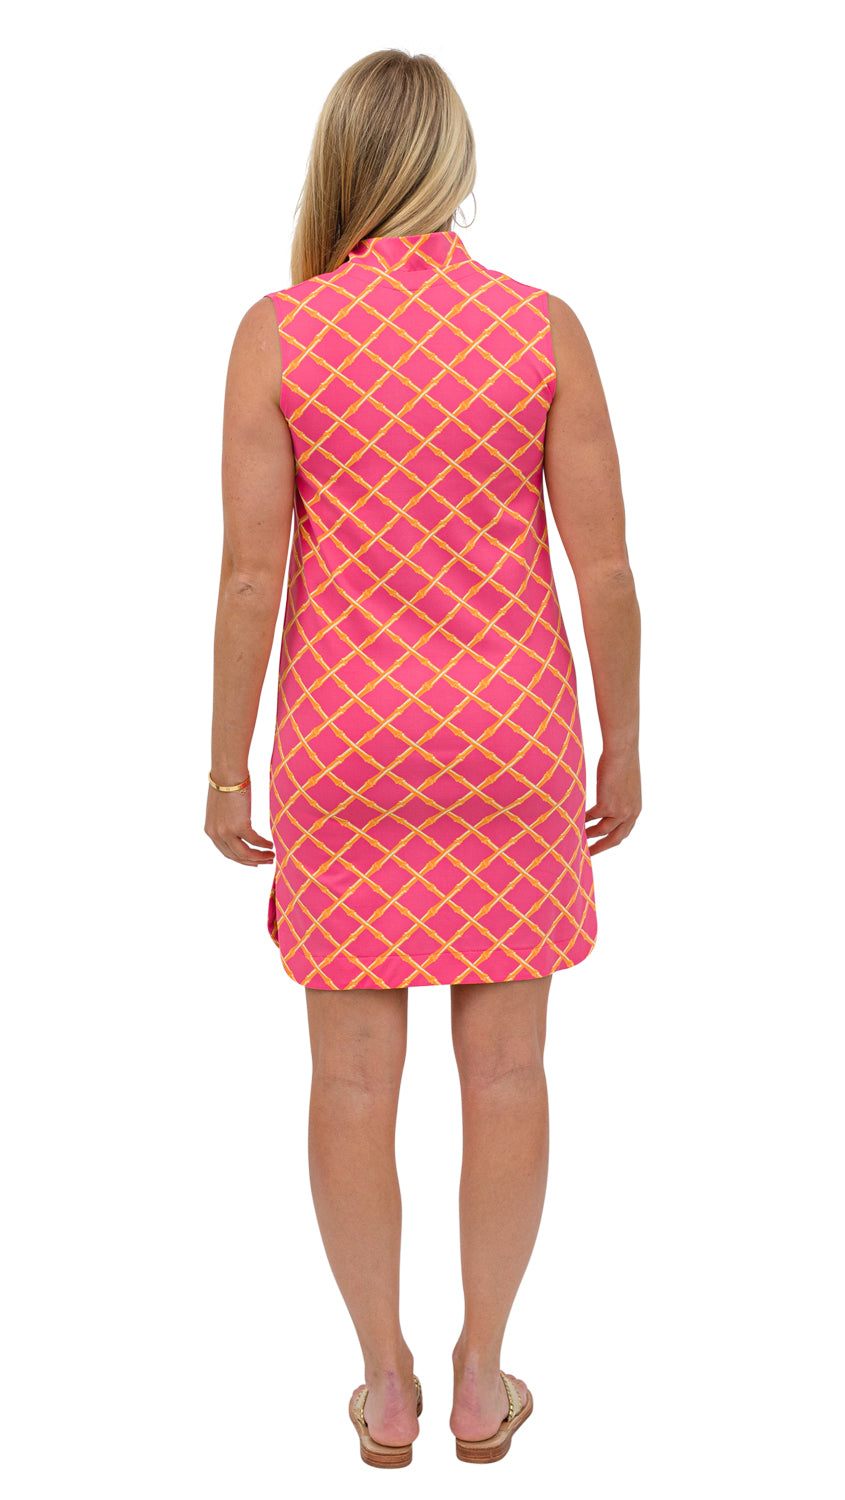 Seaport Shift - Pink/Orange Bamboo Lattice